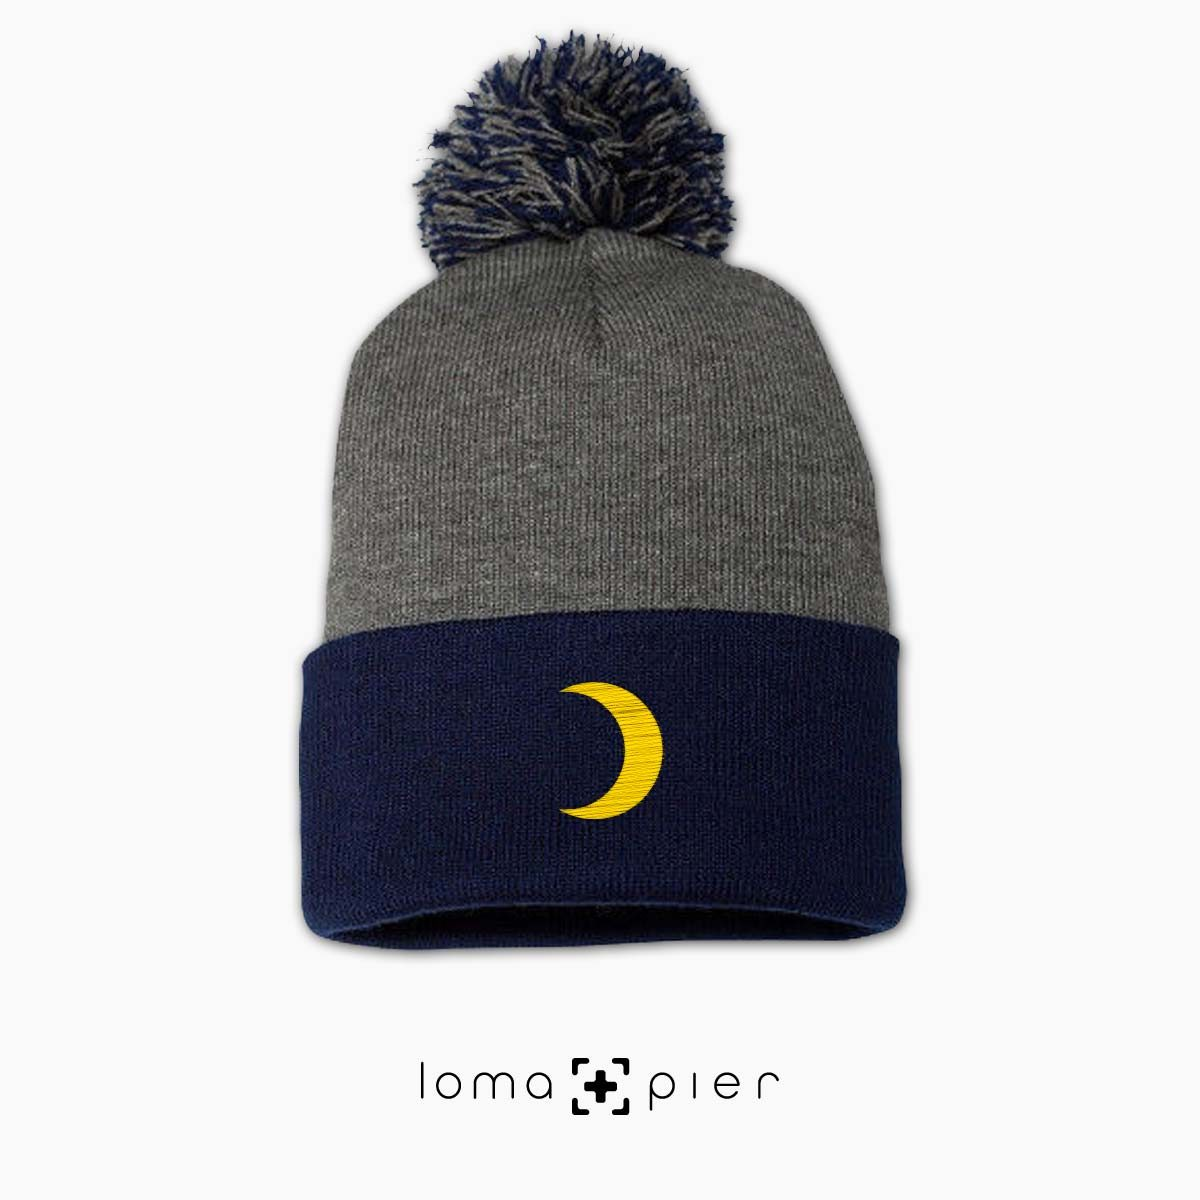 MOON icon embroidered on a grey navy pom pom beanie by loma+pier beanie store